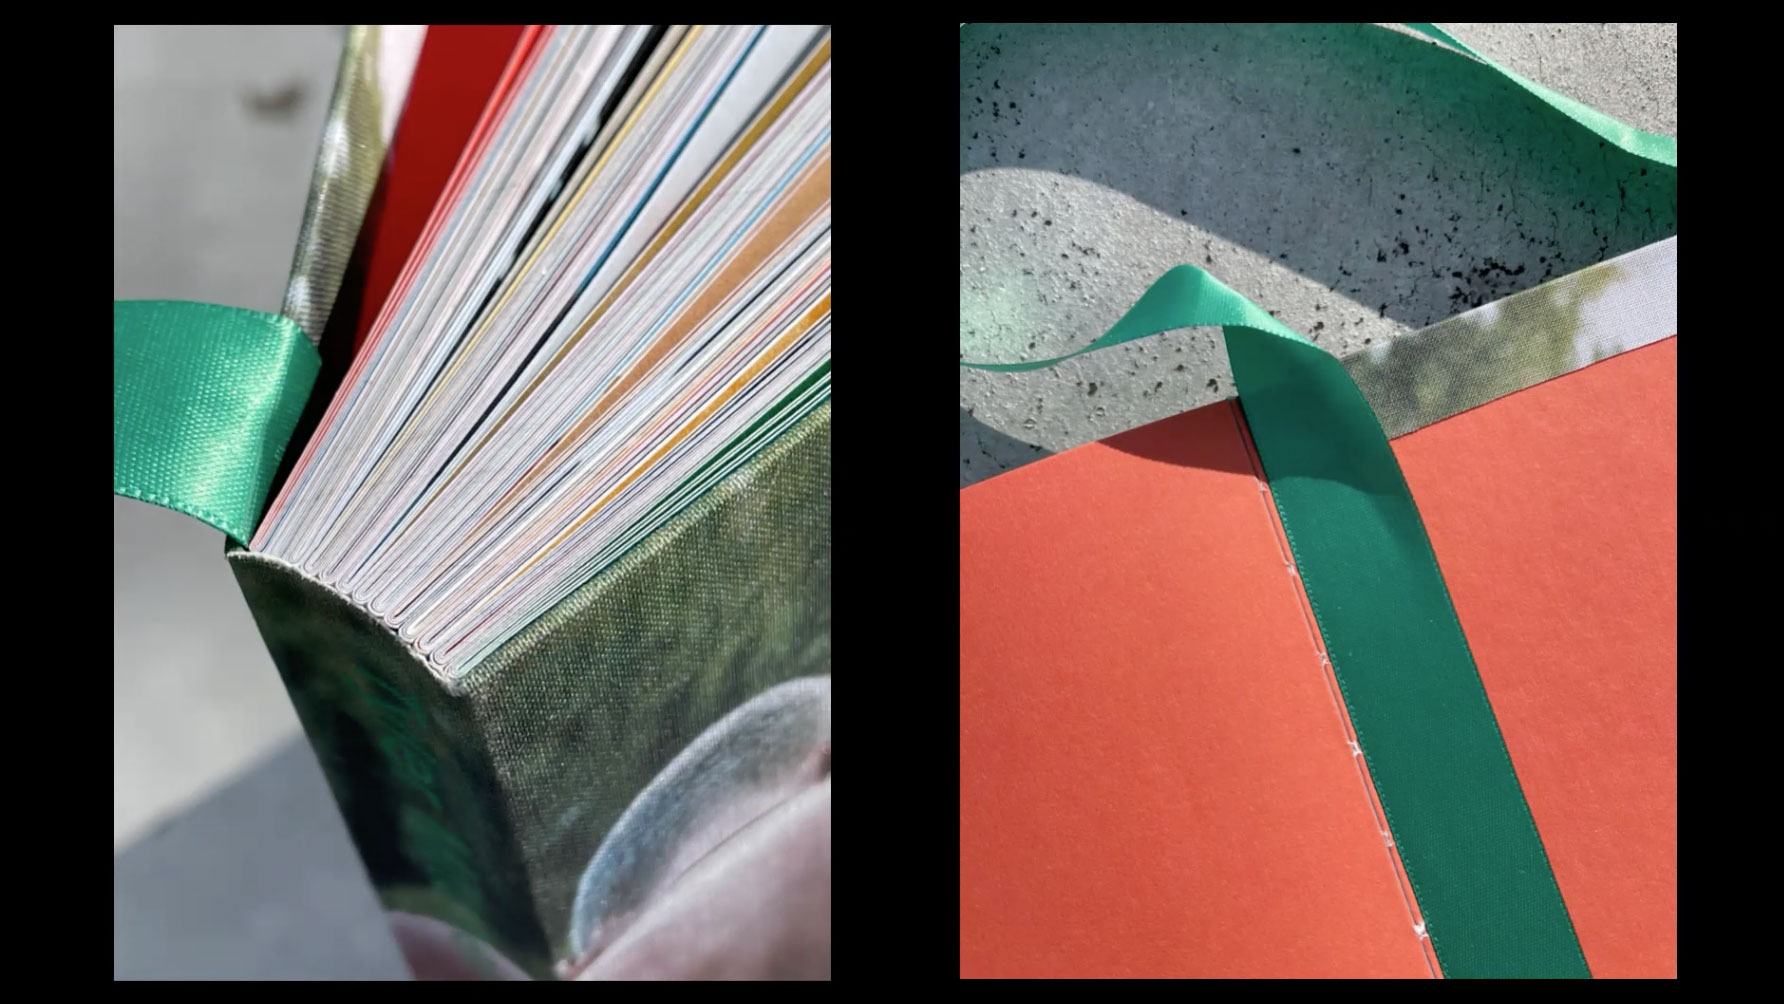 Book spine with green ribbon